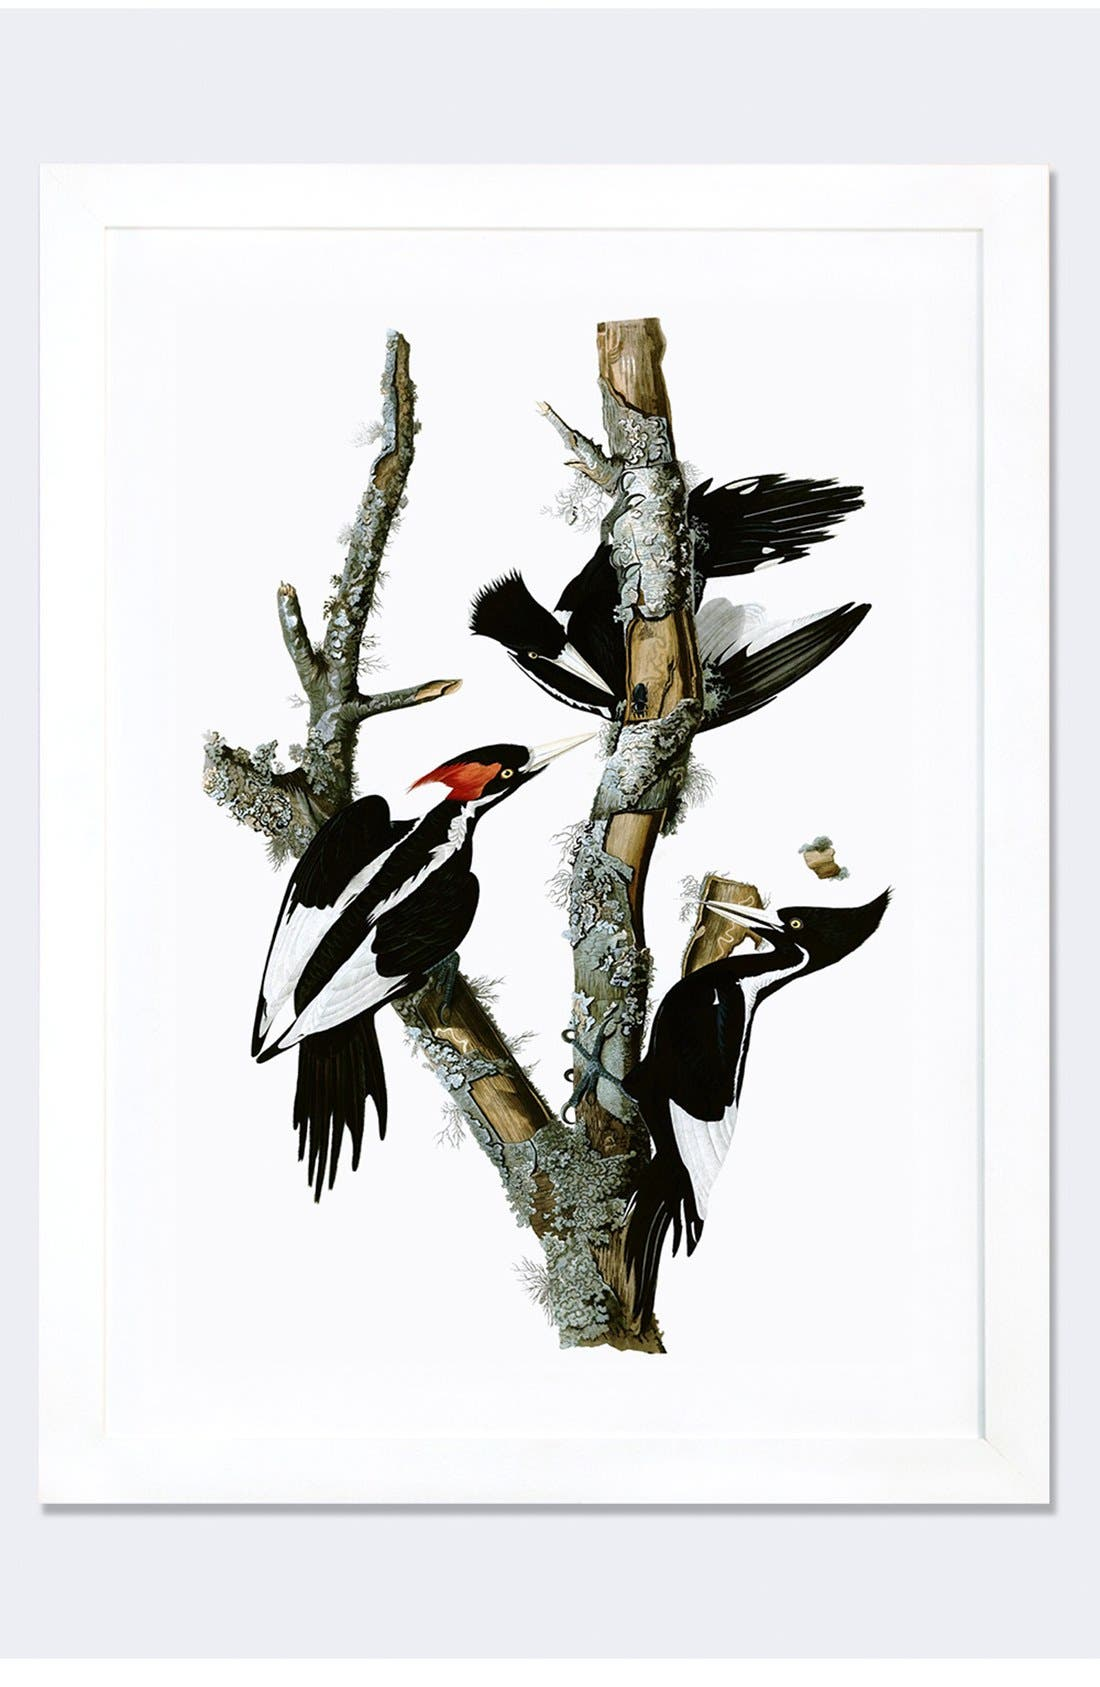 Add a striking natural accent to your living space with this stunning avian print on archival fine-art paper with fade-resistant inks for color that stays vibrant for decades. An Indonesian hardwood frame makes a stylish display. Style Name: Icanvas \\\'Ivory Billed Woodpecker\\\' Framed Fine Art Print. Style Number: 5171141. Available in stores.